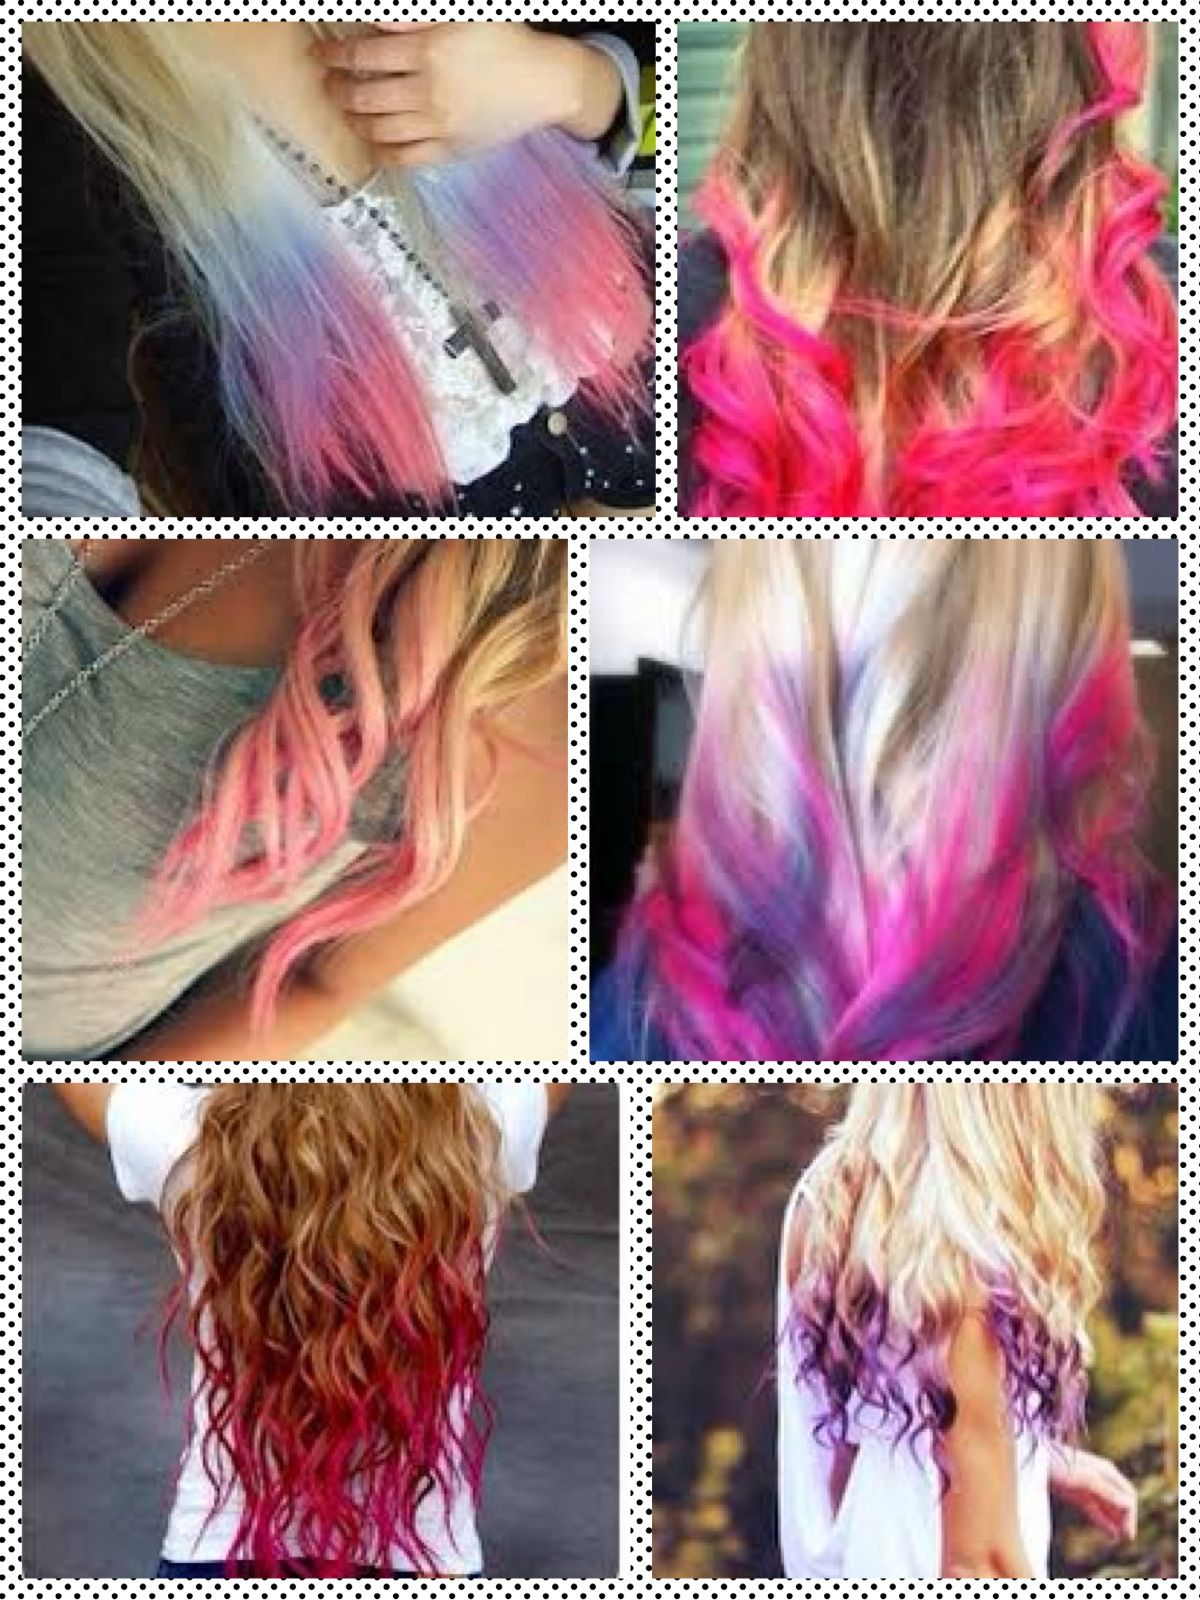 Cute Dip N Dye Hair Ideas Hair Pinterest Dye Hair Hair Dye